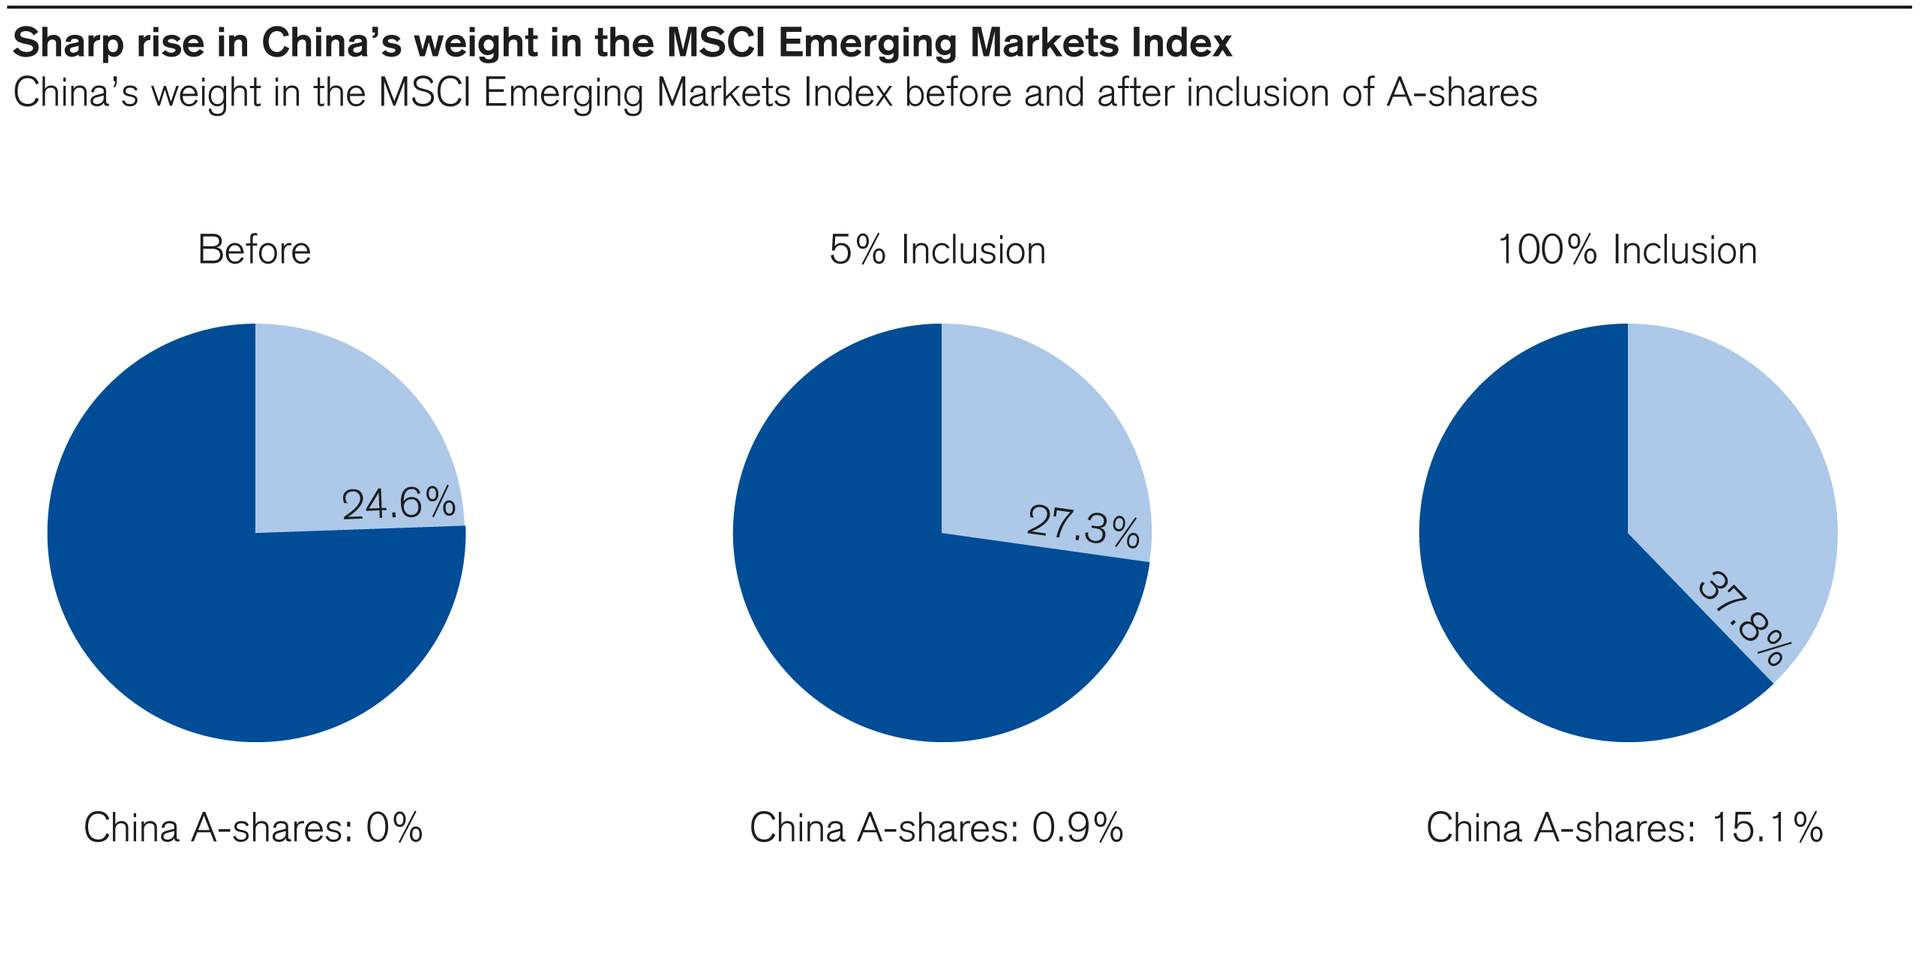 China's weight in the MSCI Emerging Markets Index